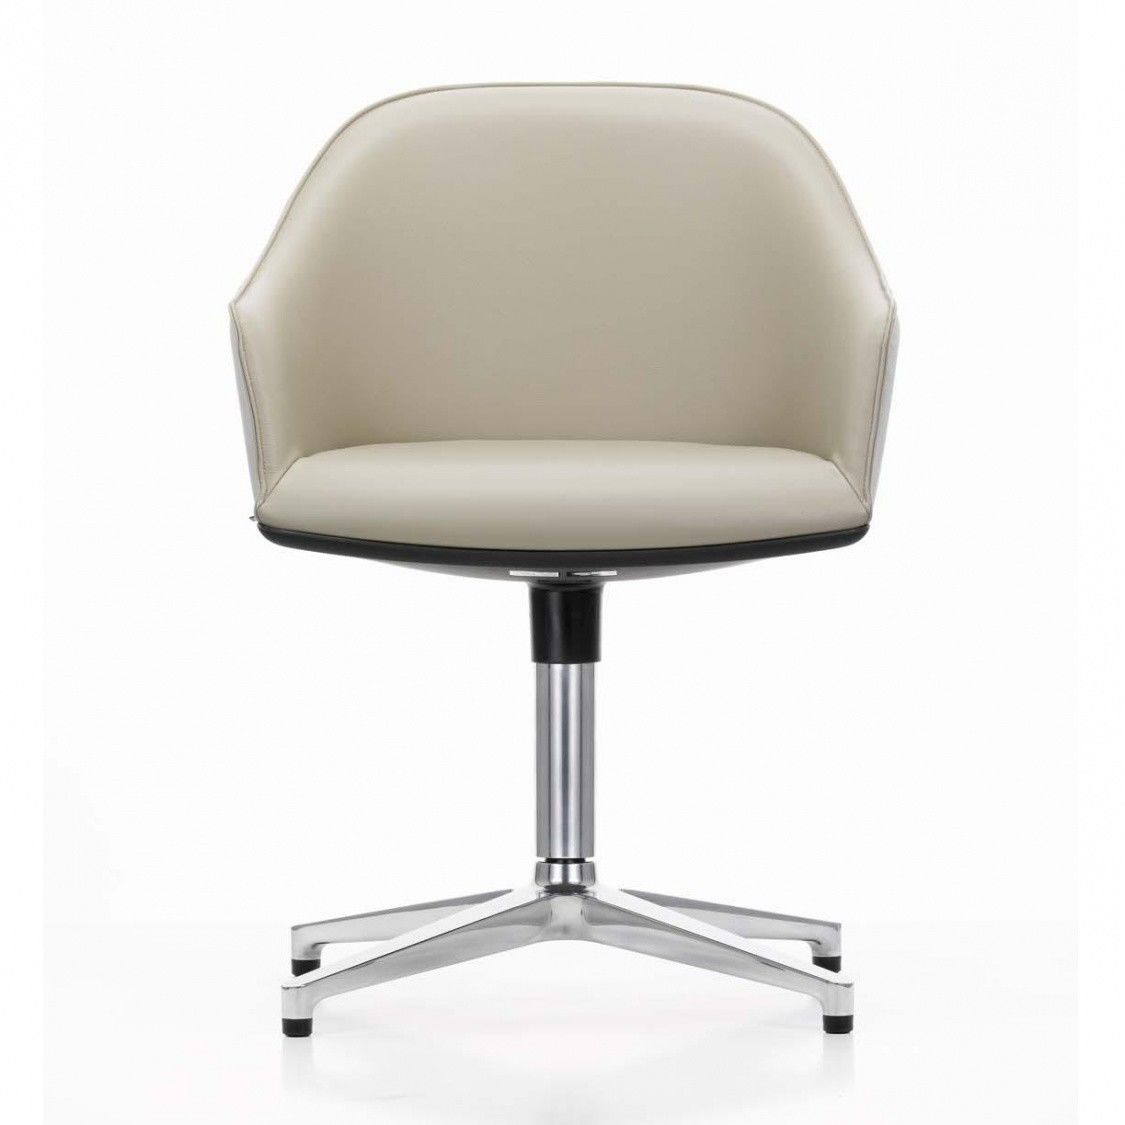 Softshell chair chaise de conf rence cuir vitra for Soldes vitra